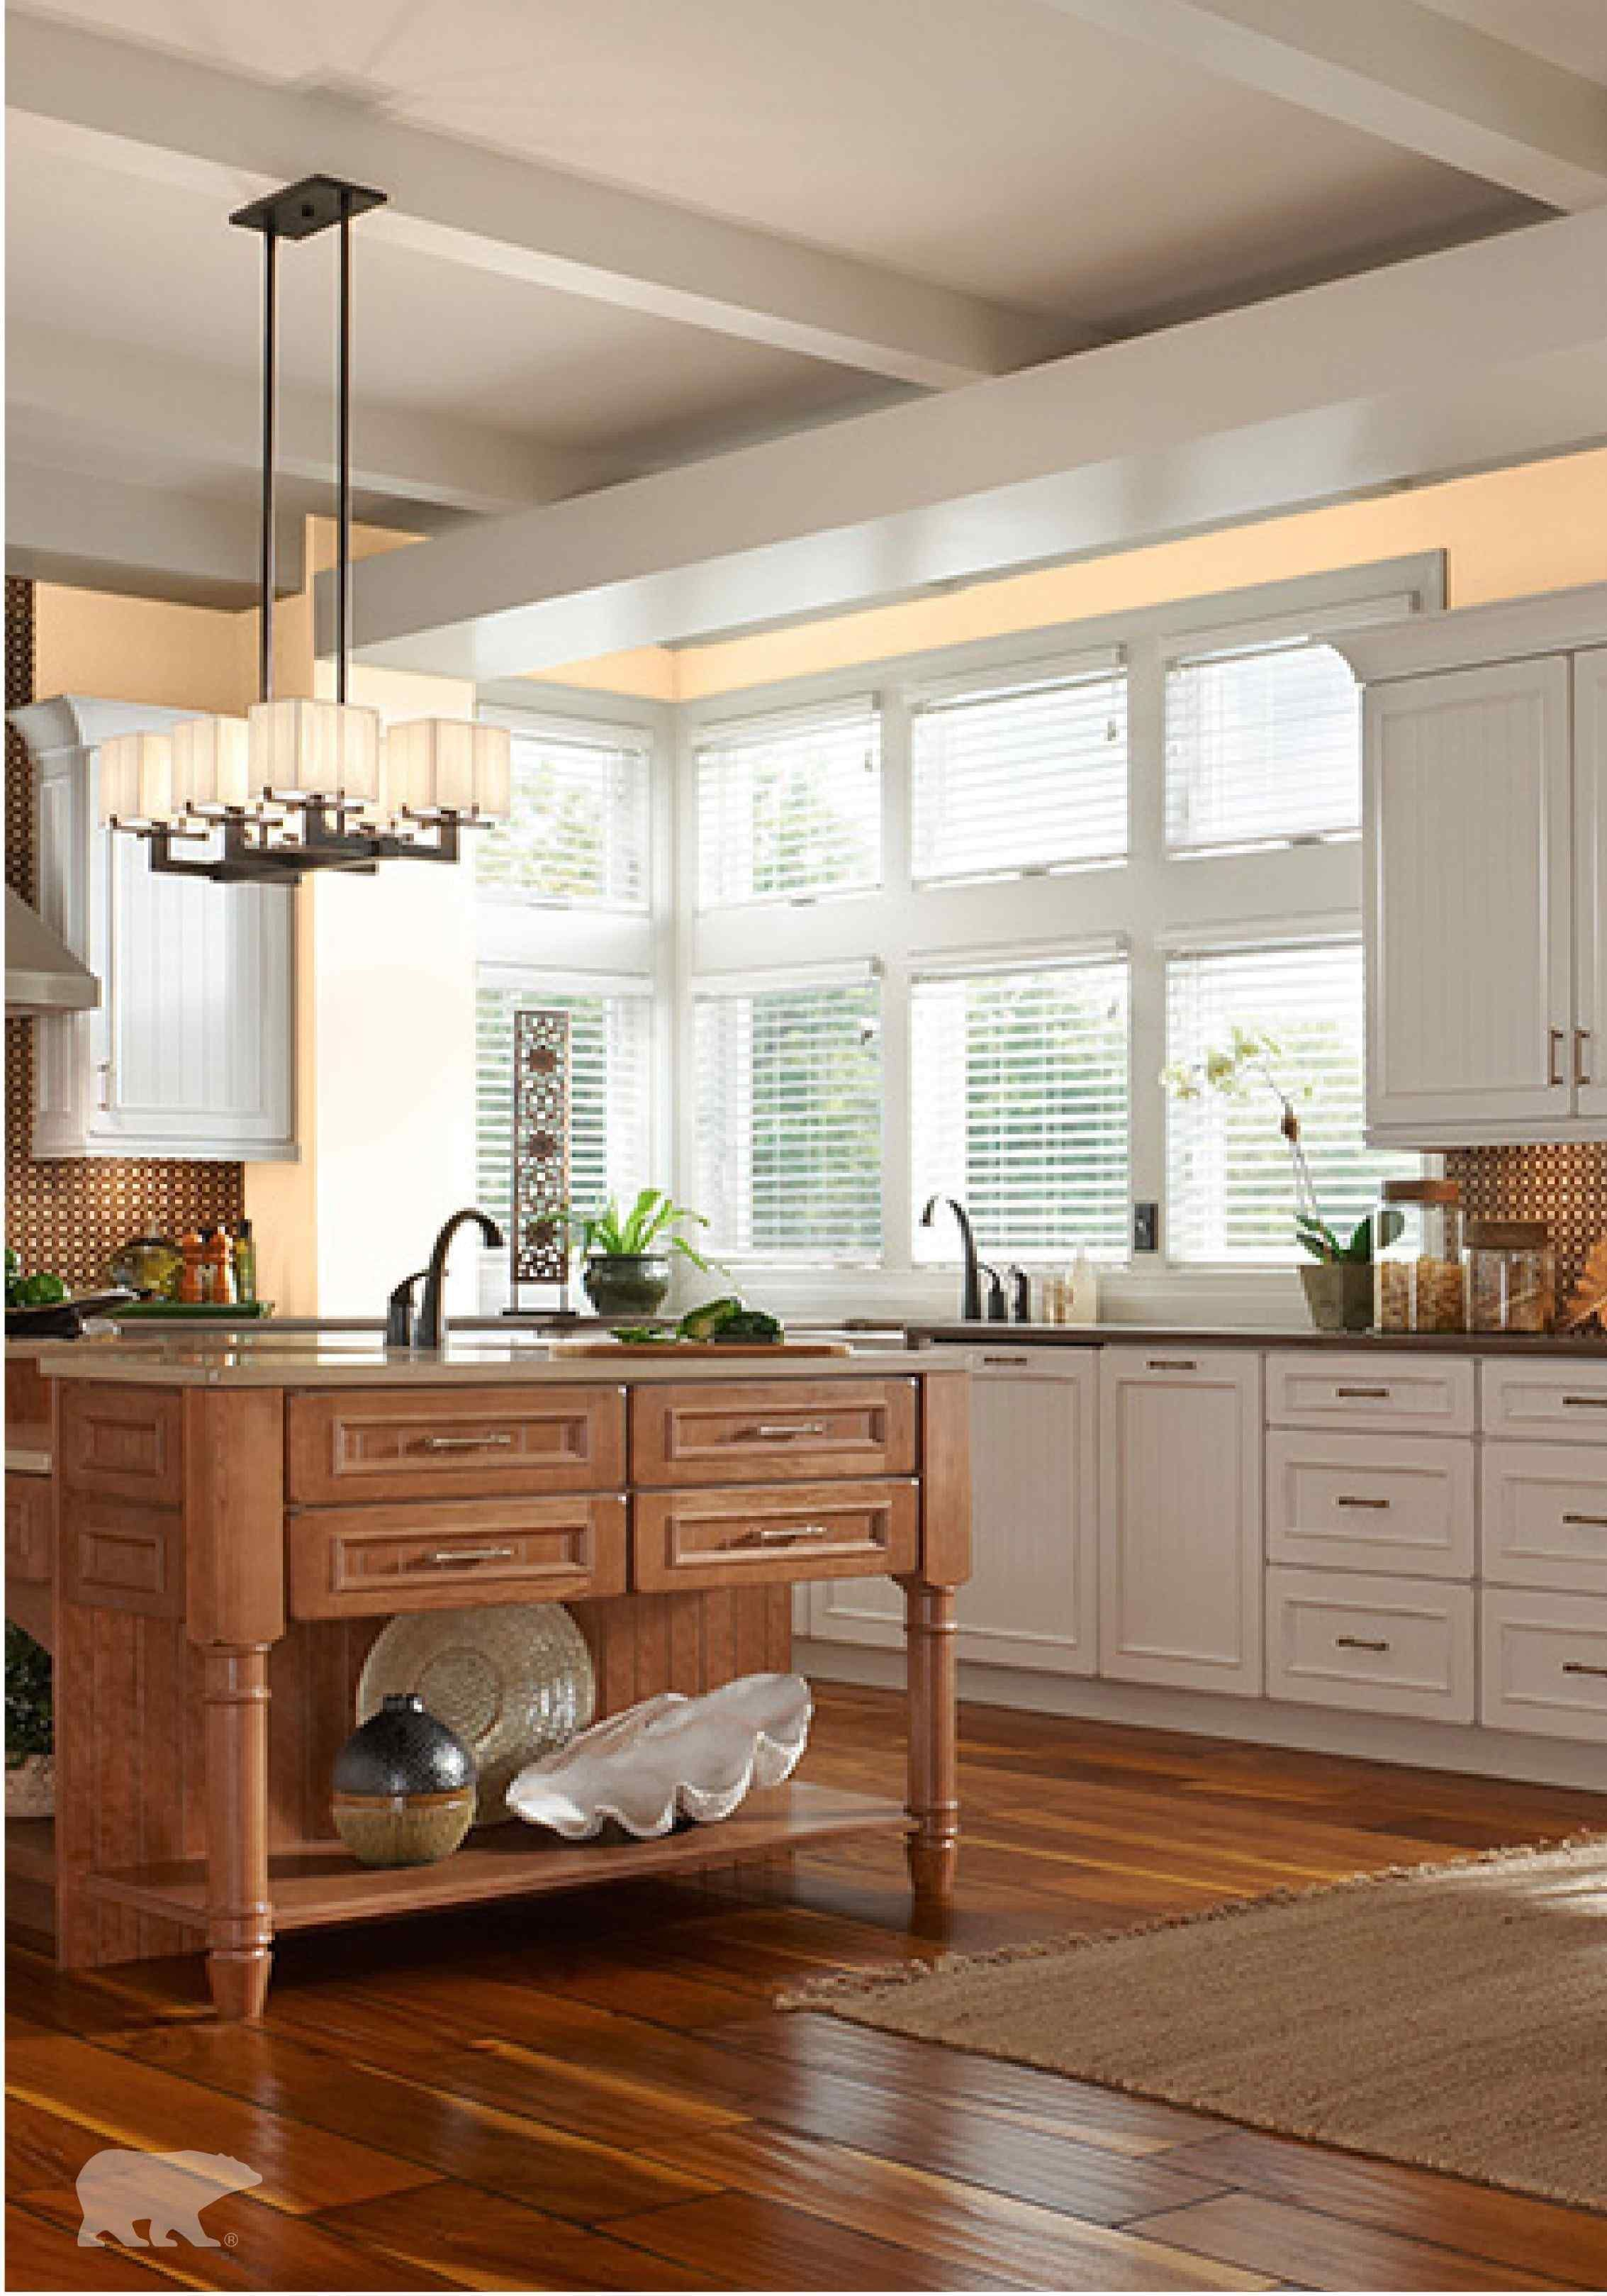 painted cabinet behr 20 example of new behr off white paint colors kitchen cabinets to on kitchen paint colors id=21326